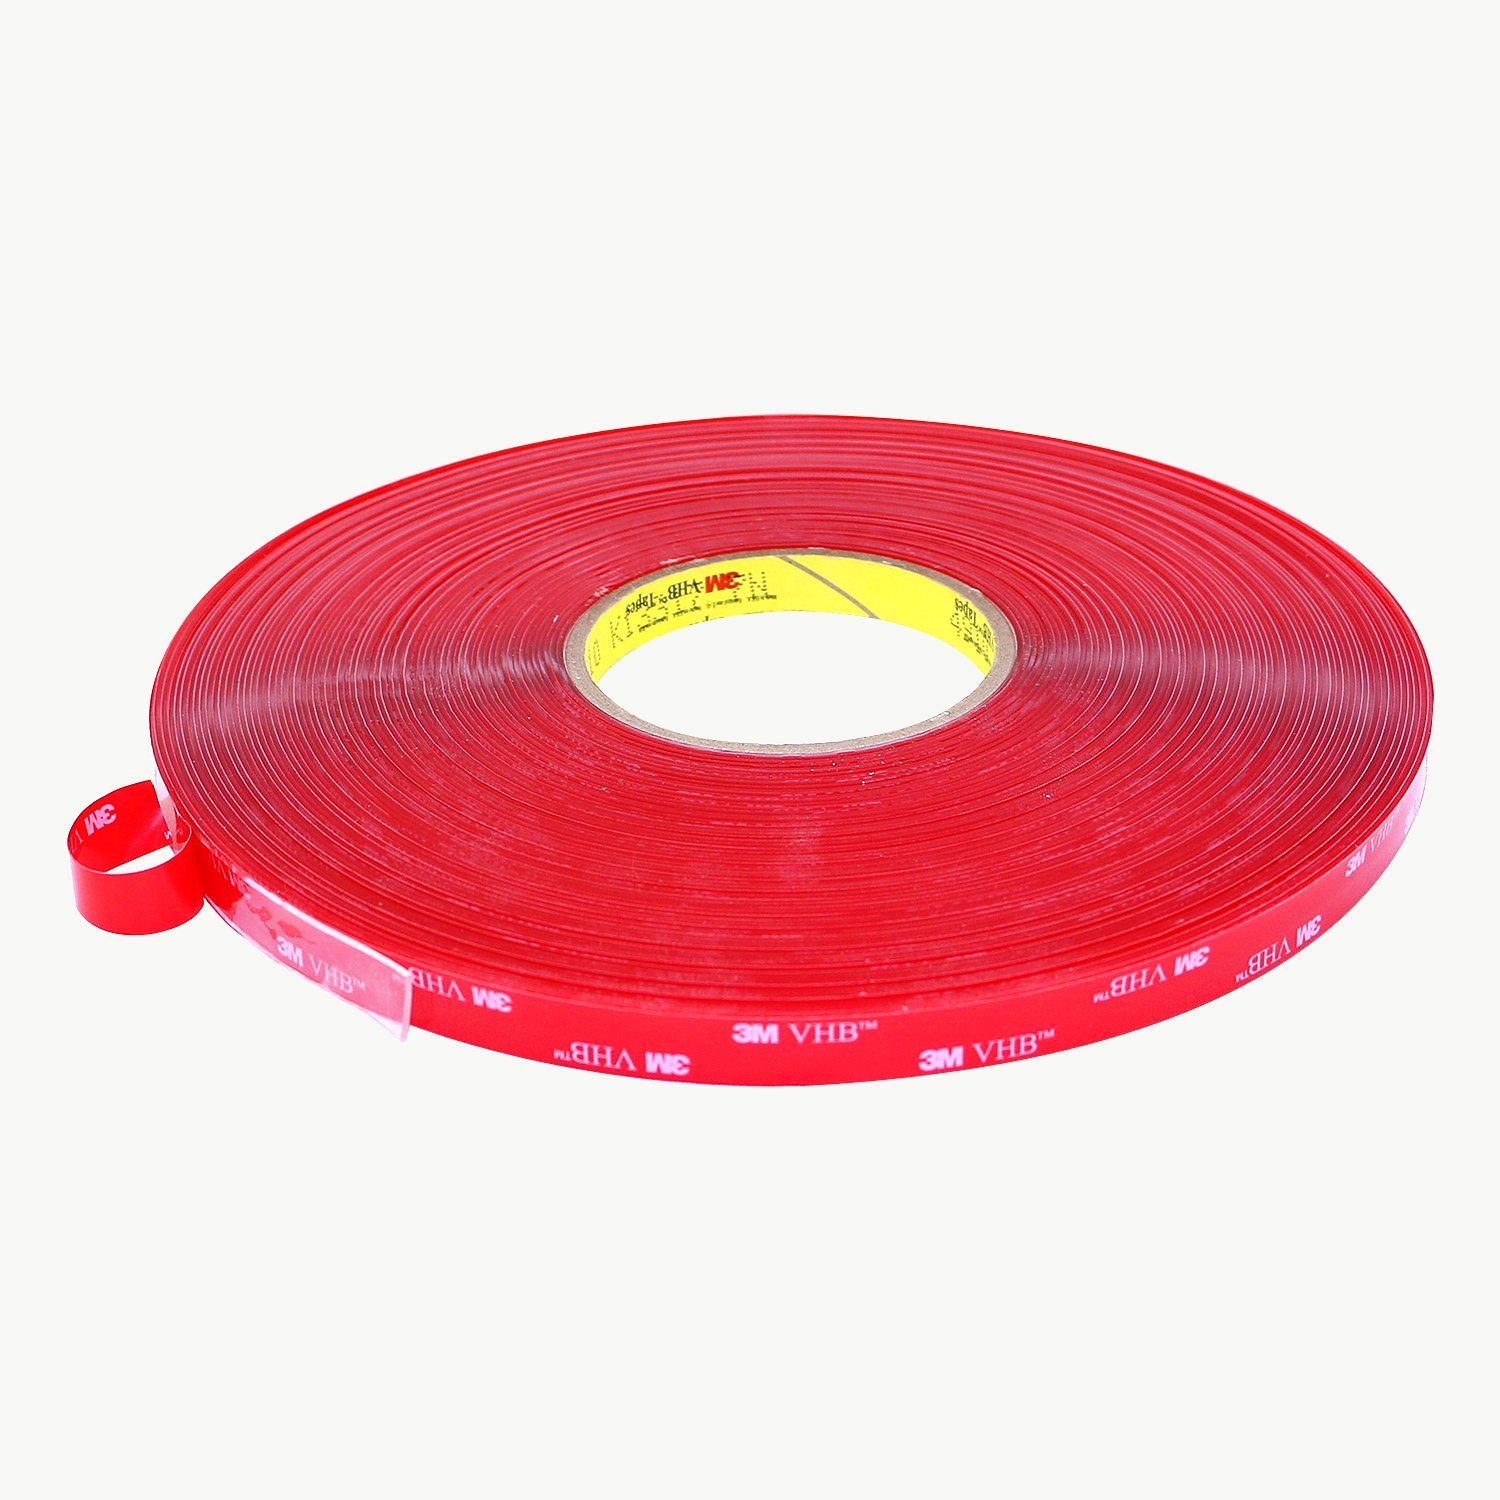 Clear 3m 4910 VHB  Double sided  Acrylic Foam Tape for Metal, Glass and Plastics Bonding Featured Image